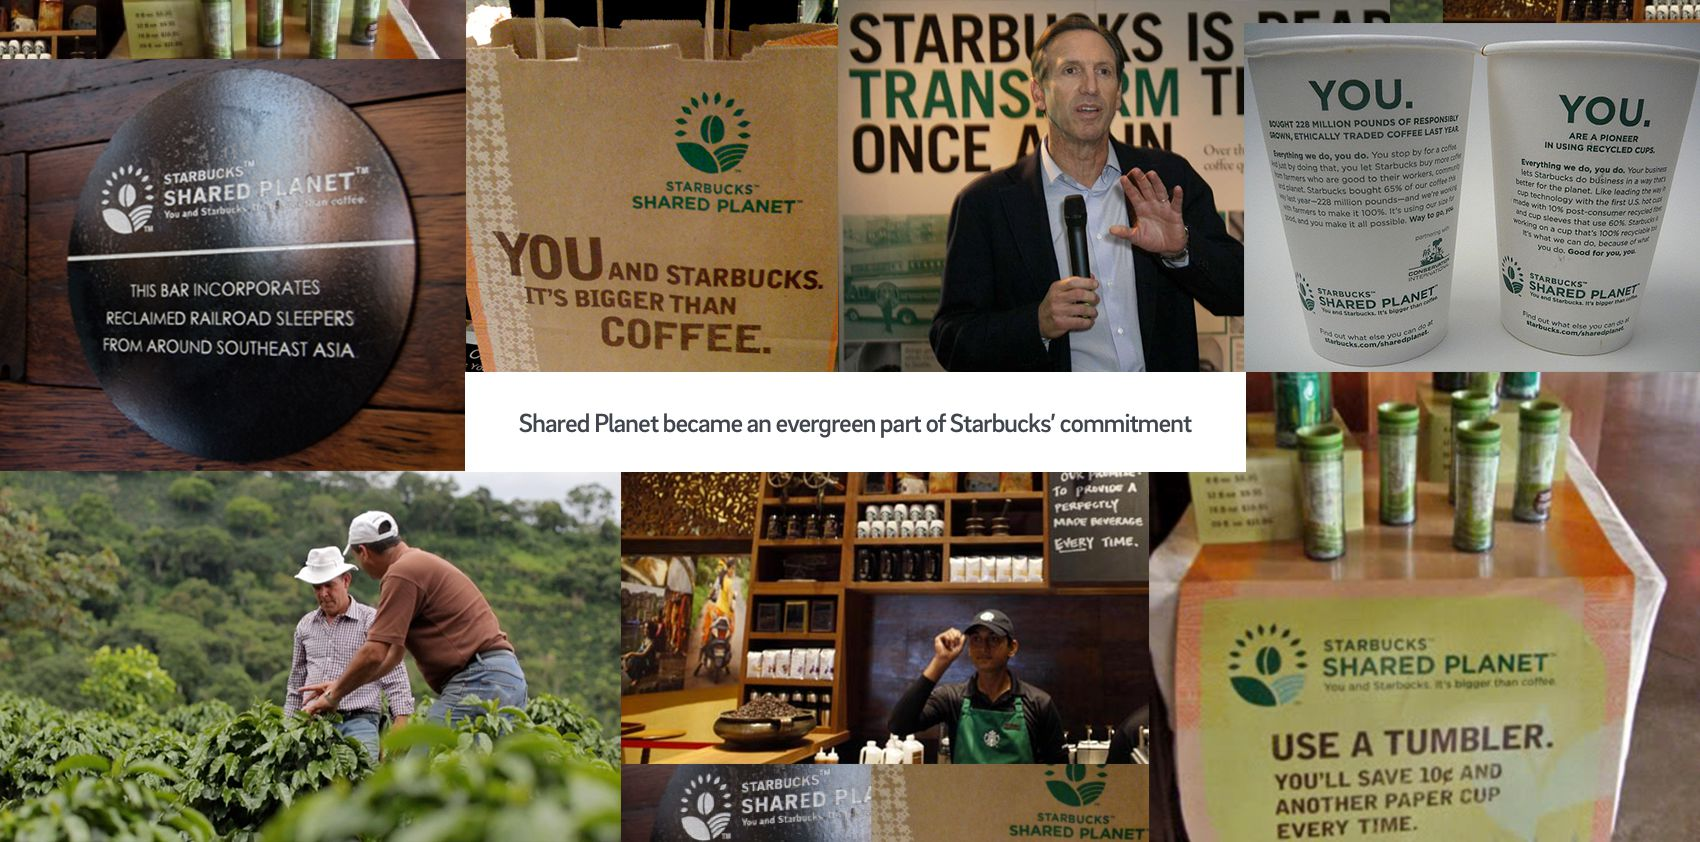 coffee and starbucks 2 essay Ques 1 starbuck's value chain is farmers, roasting, distribution, and retailraw materials (coffee beans): coffee bean farming is not vertically integrated into starbucks the company purchases coffee beans from farmers.